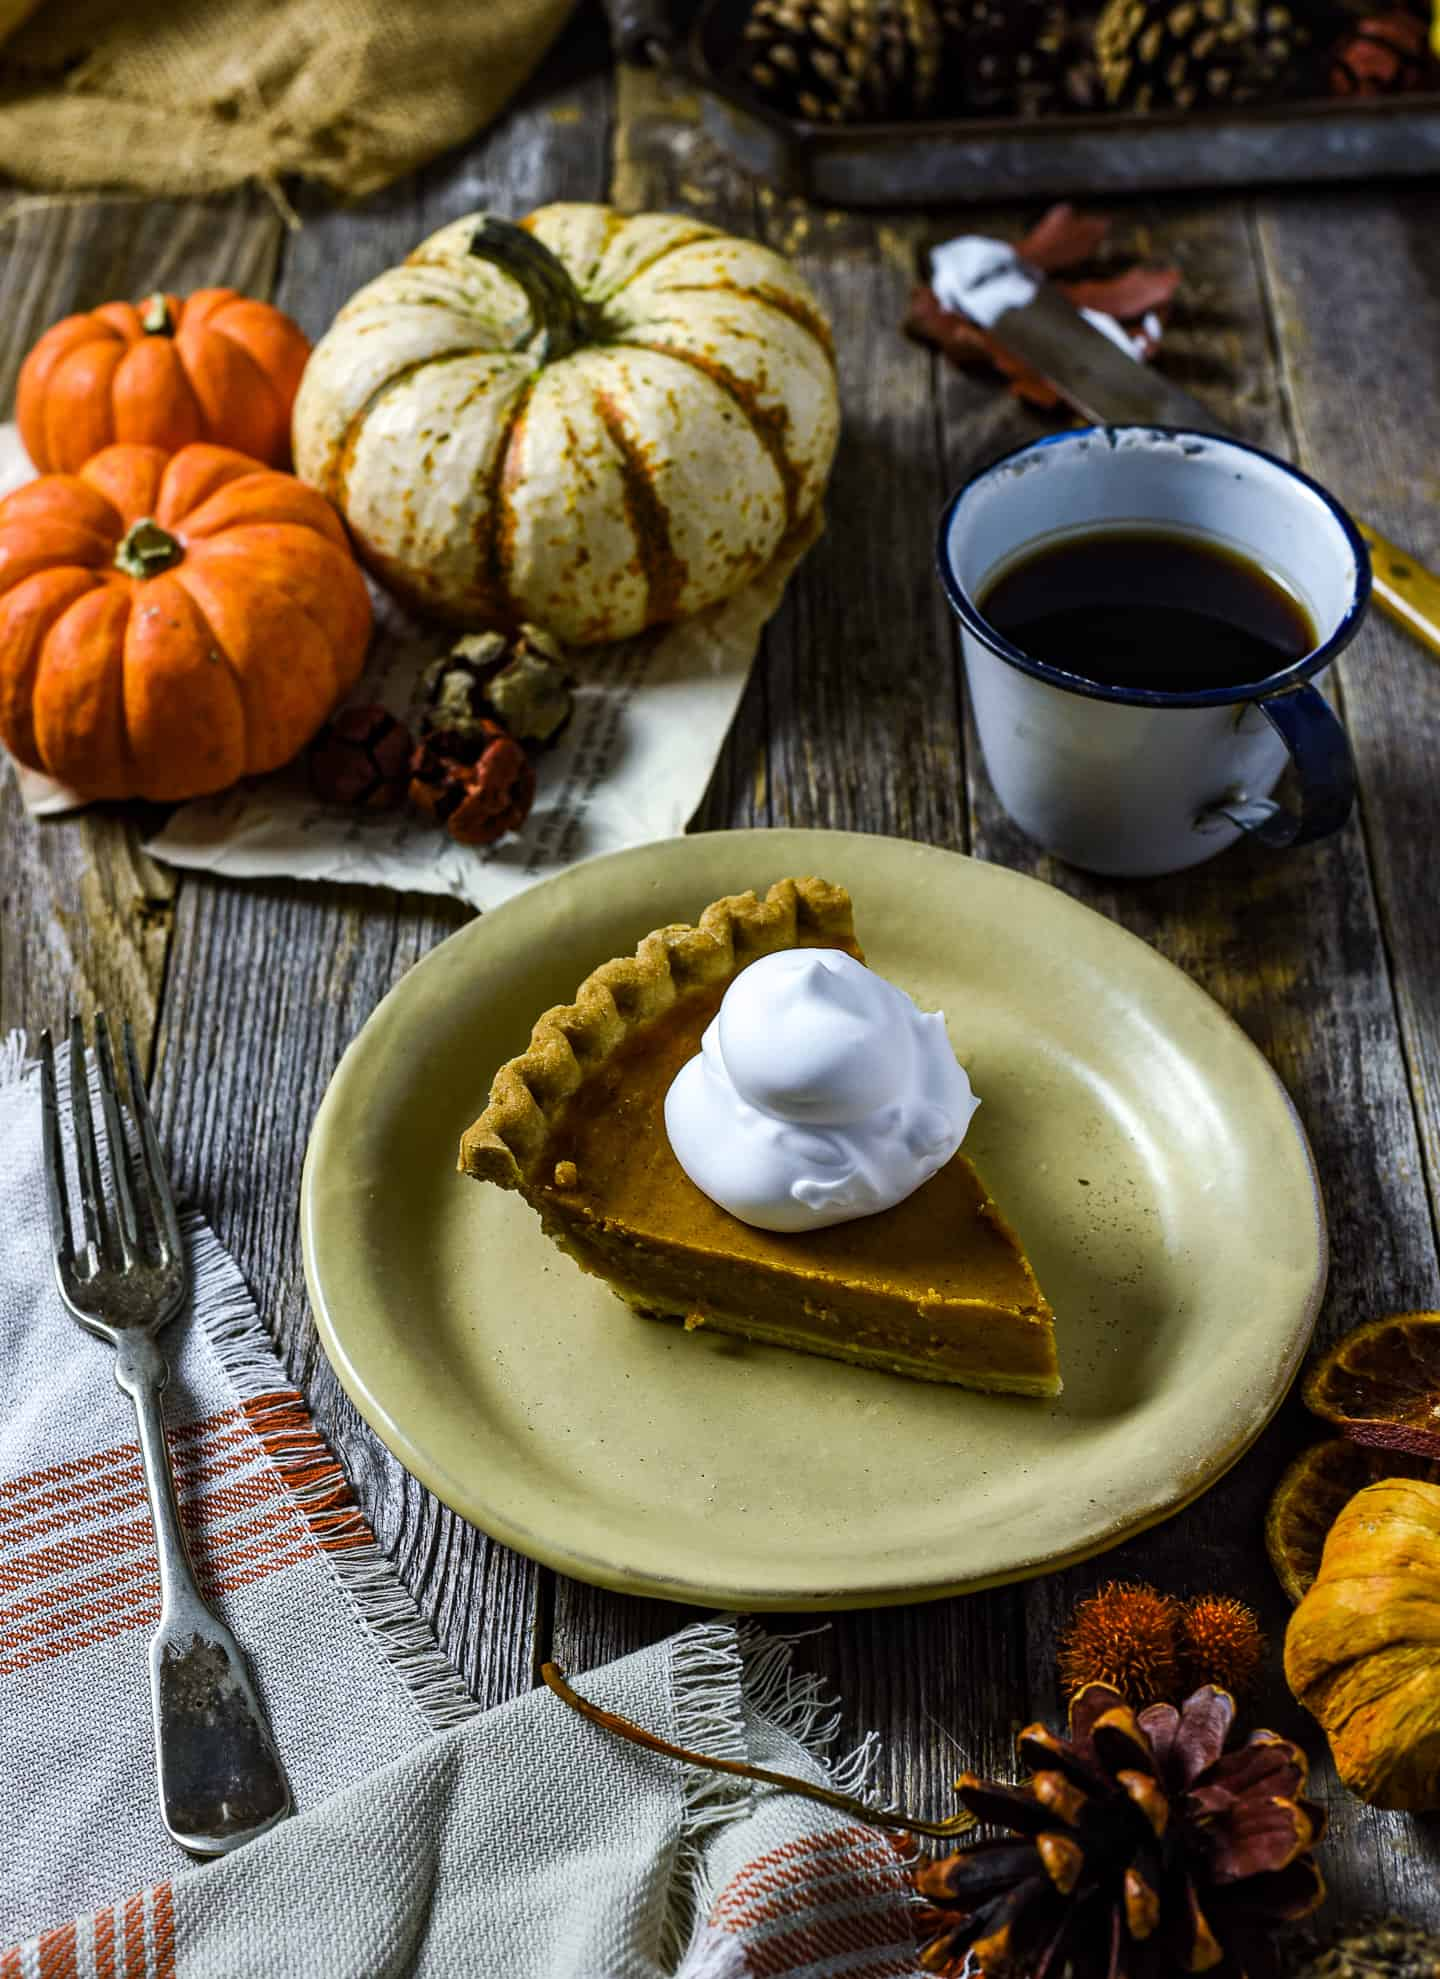 Whipped cream on top of pumpkin pie.